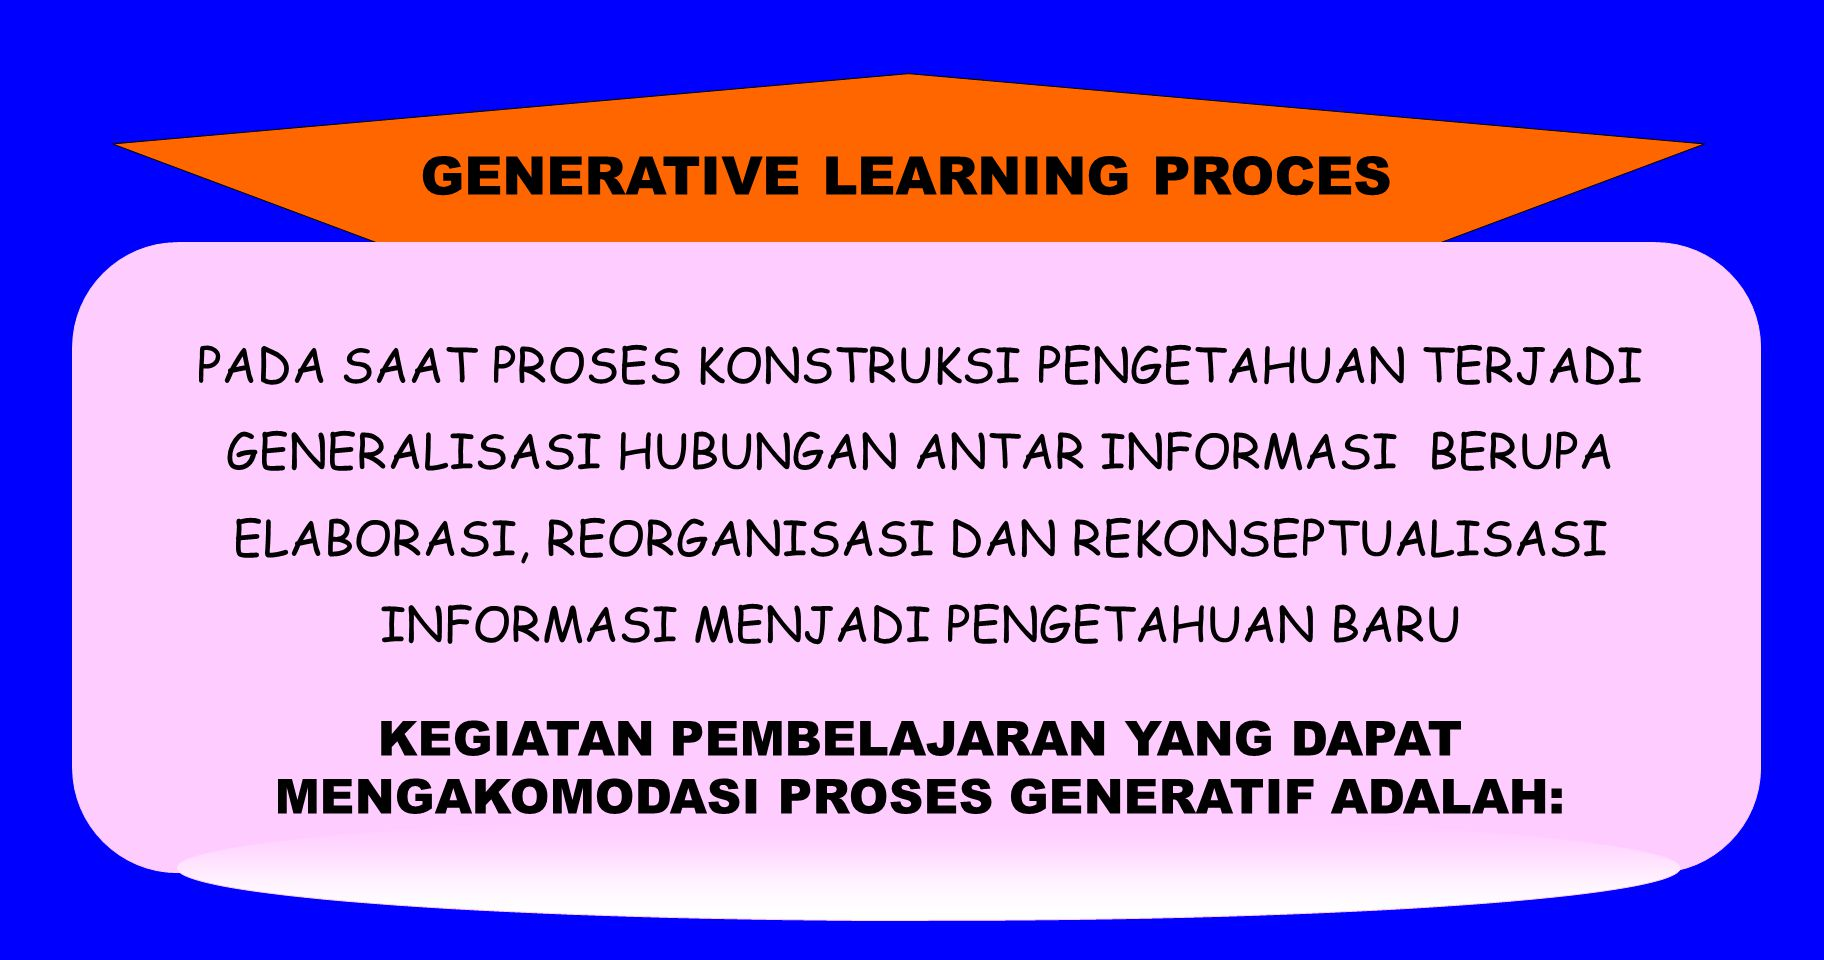 GENERATIVE LEARNING PROCES